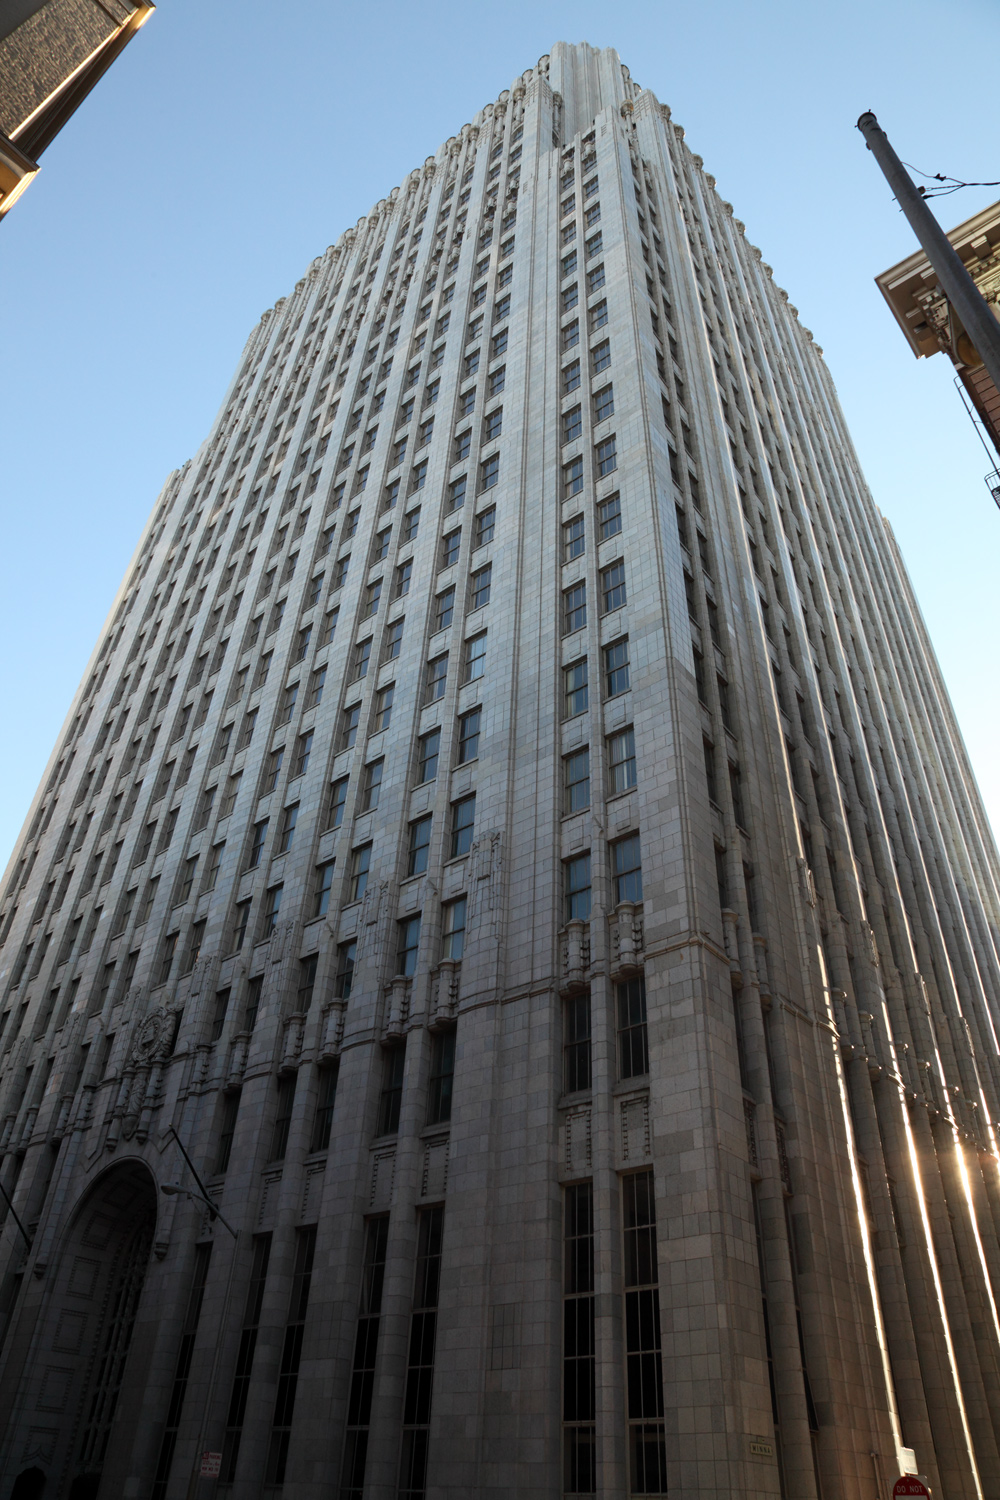 The 140 New Montgomery building in San Francisco, home of Yelp's headquarters